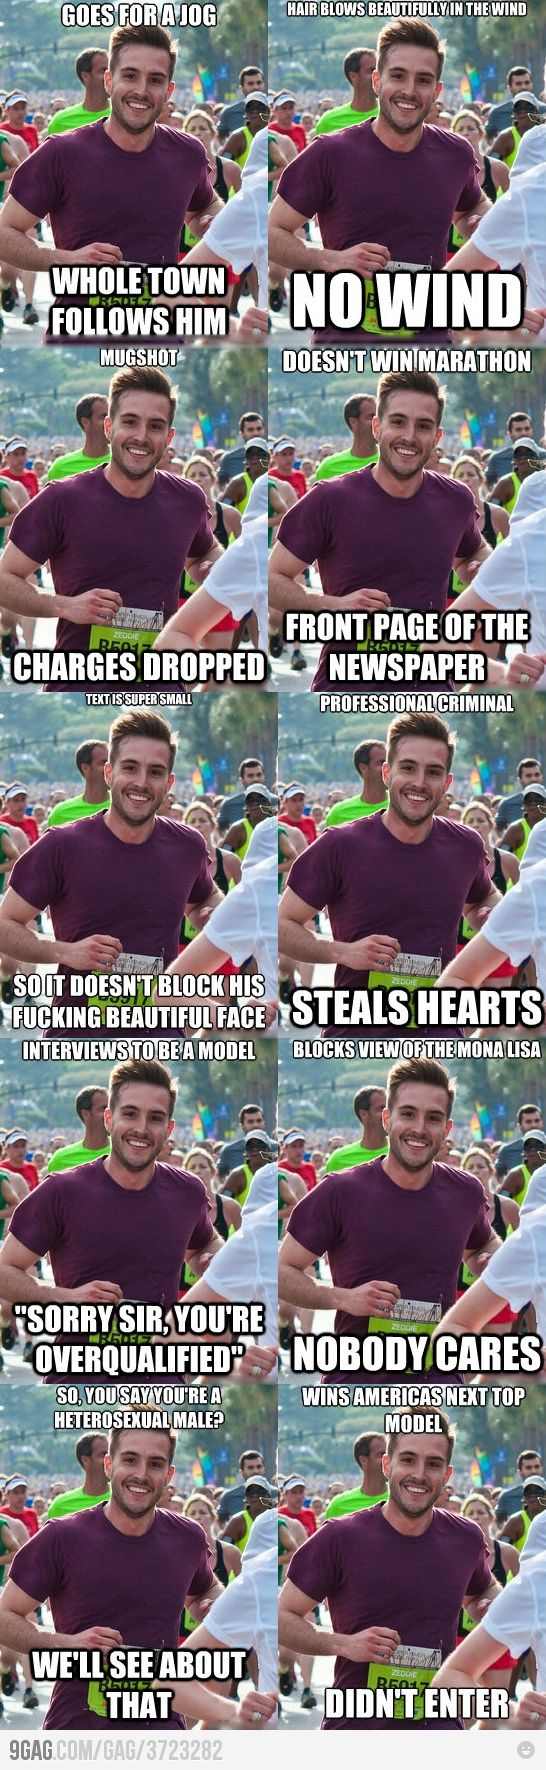 I'd make this guy a sandwich. ( ridiculously photogenic runner)